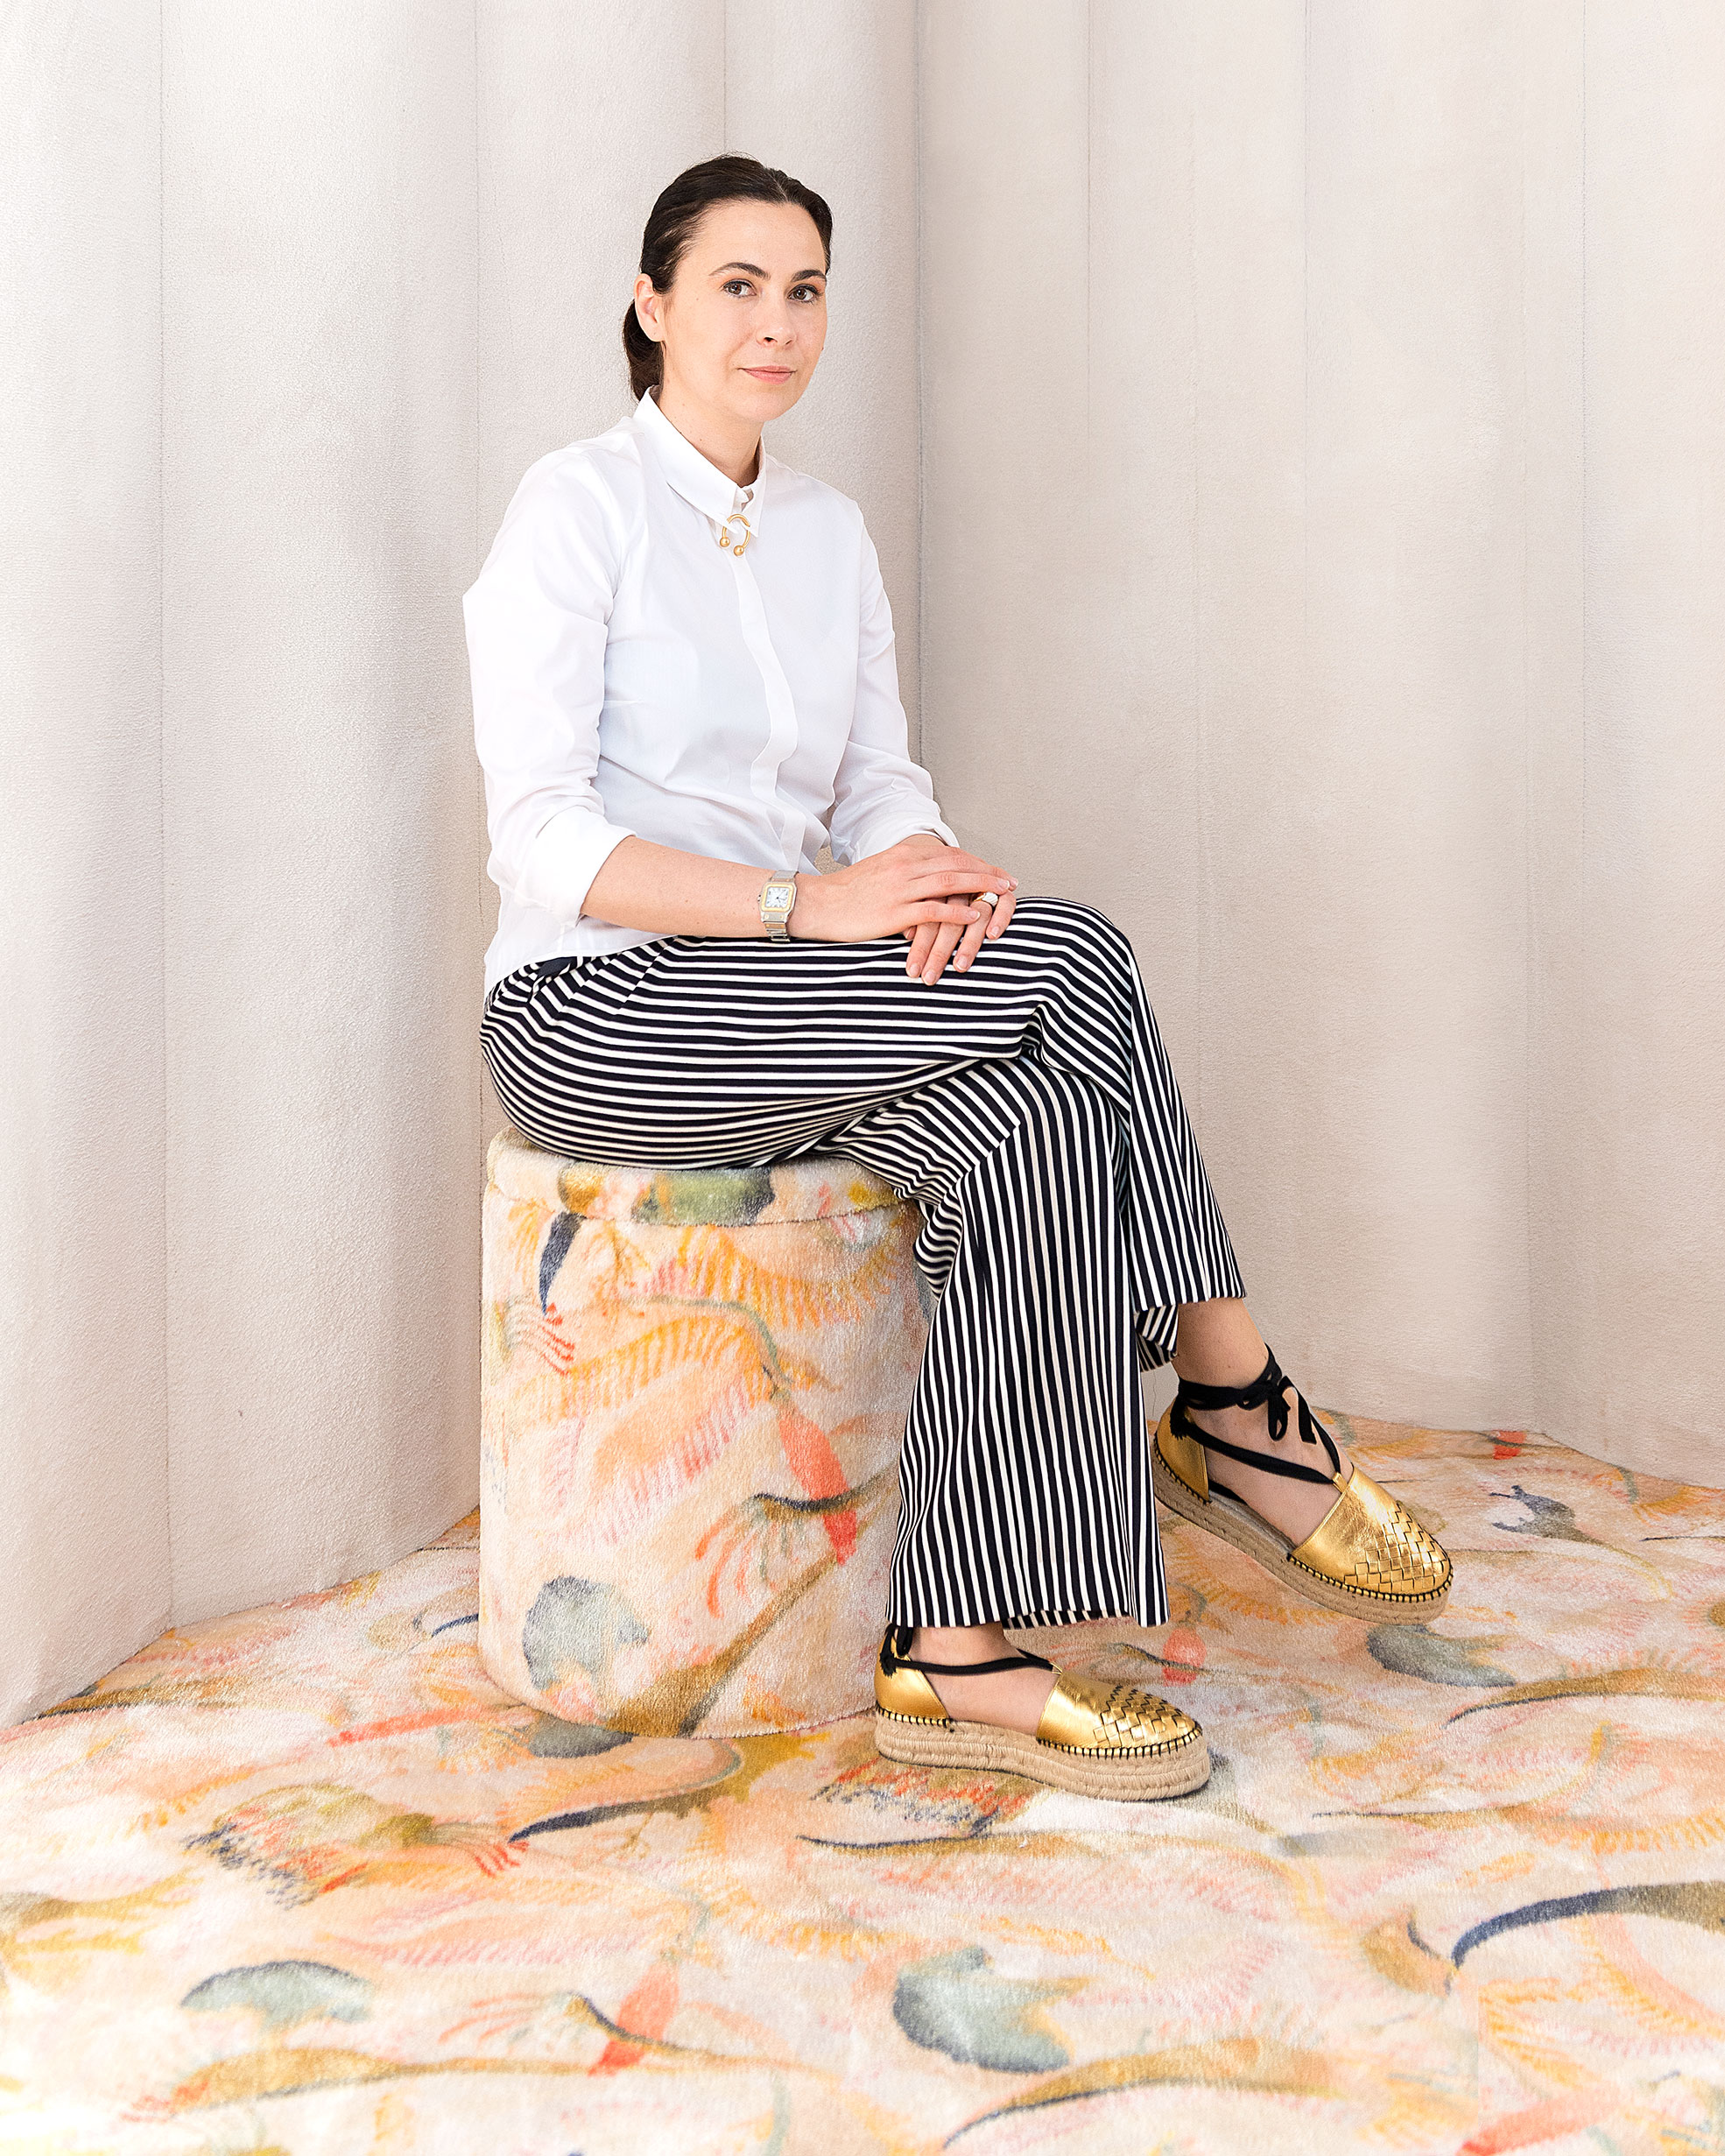 Portrait of the designer Cristina Celestino on Sabaitalia sofa at Brera Design Apartment Photography of Maria Teresa Furnari